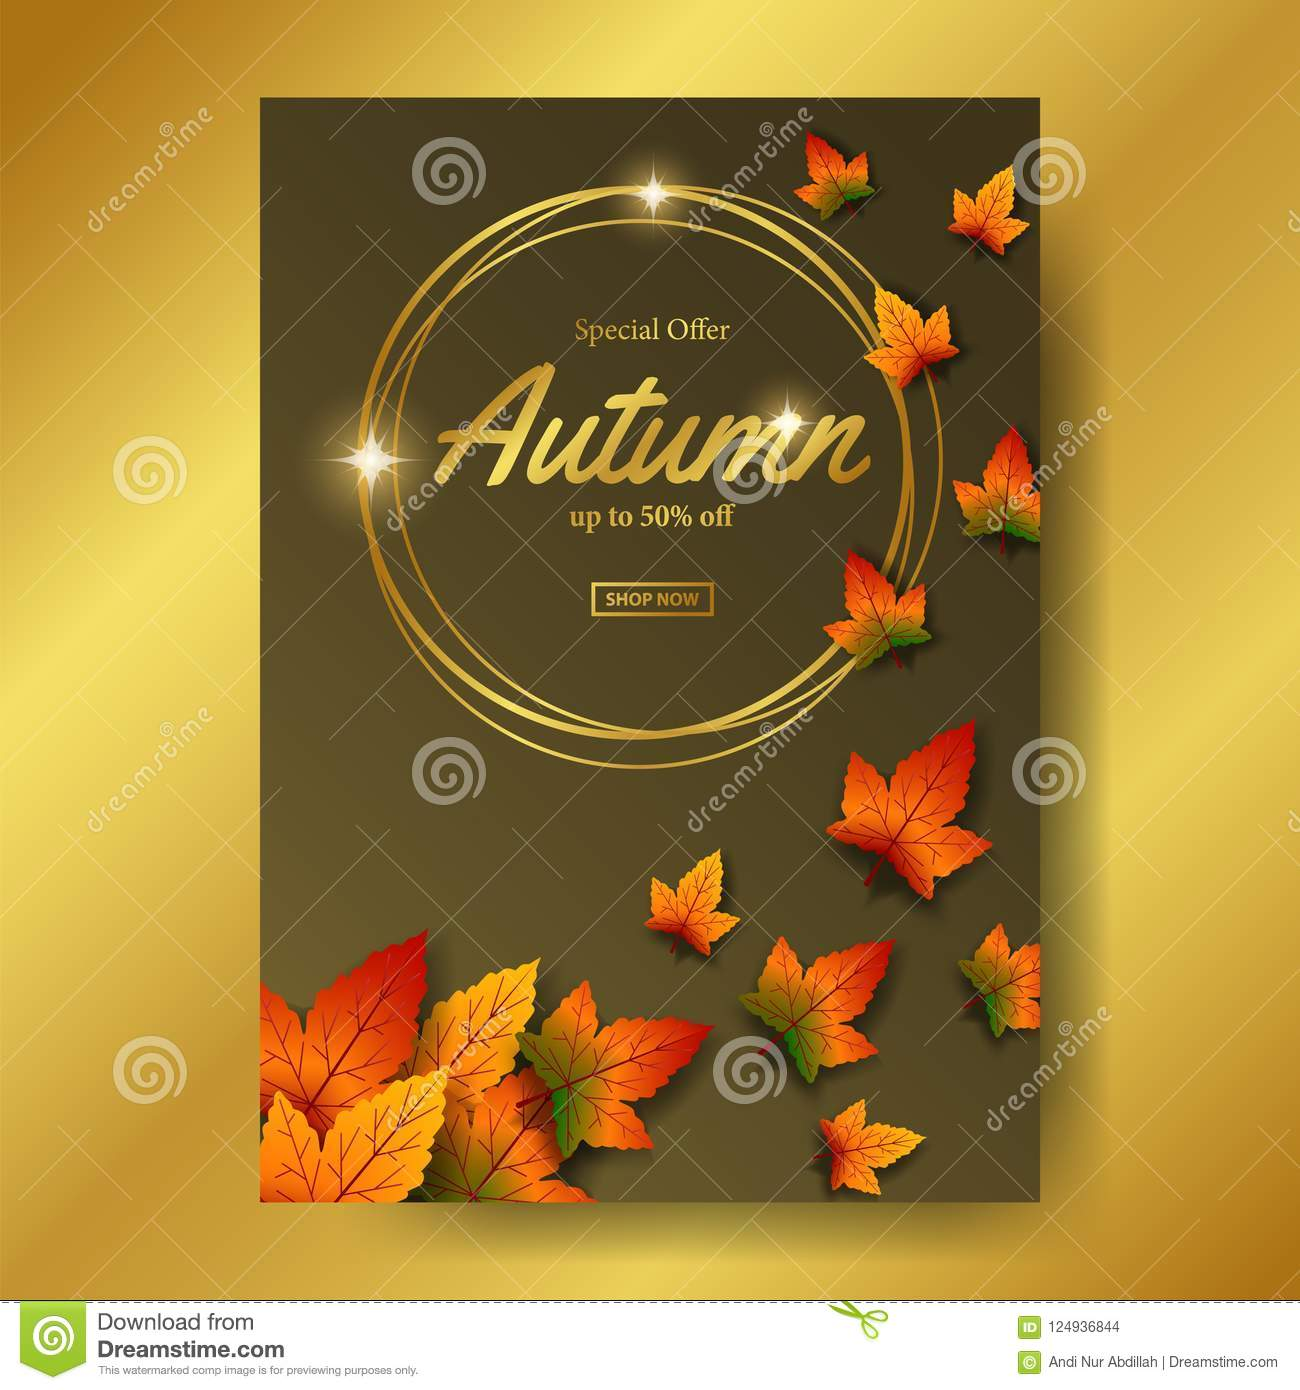 autumn leaves fall with gold circle frame sale offer template